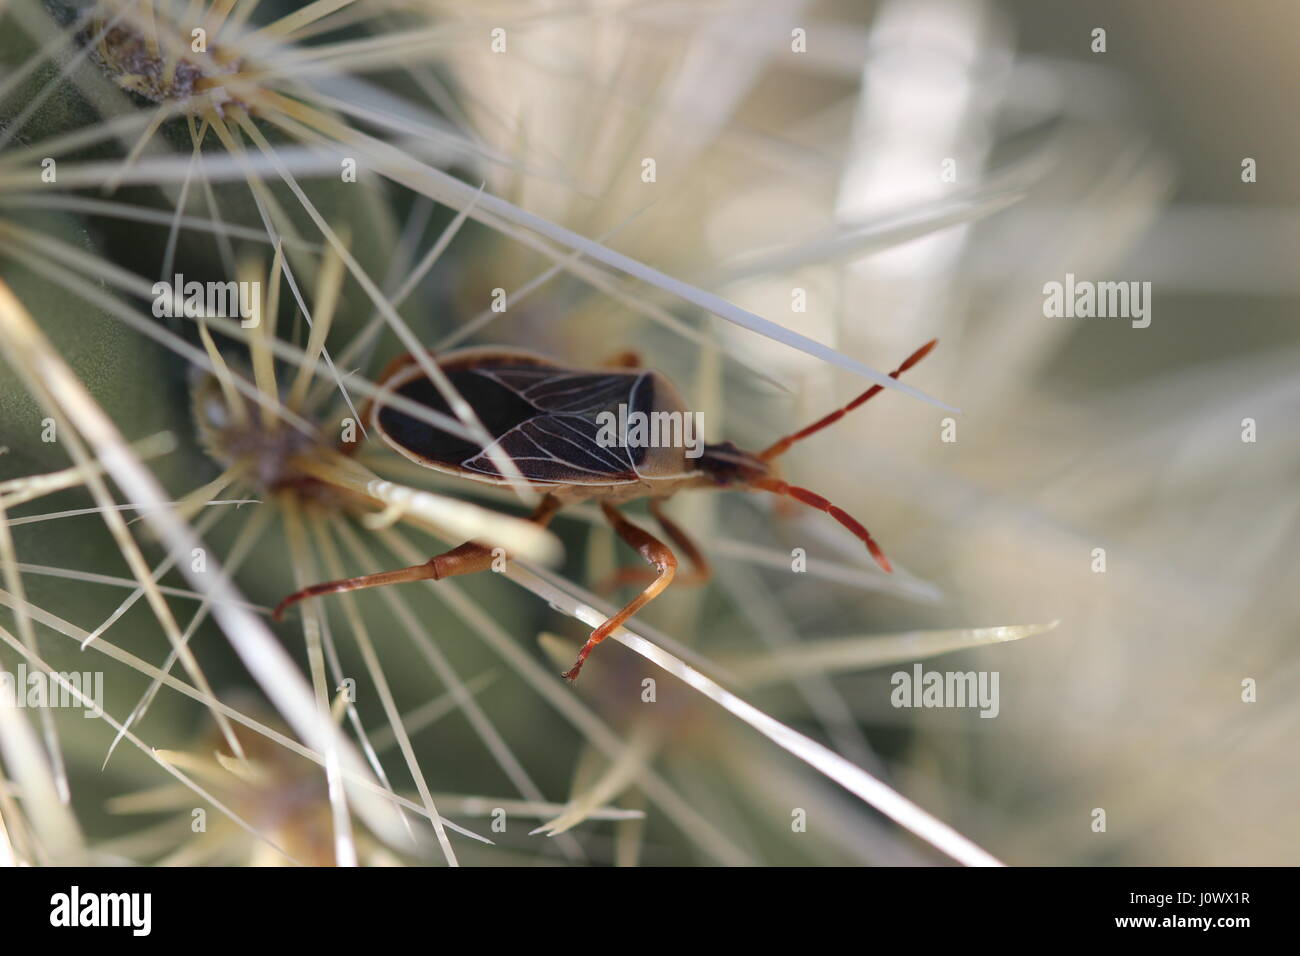 Close up macro of true bug (Heteroptera), on cactus spines in California desert. Stock Photo